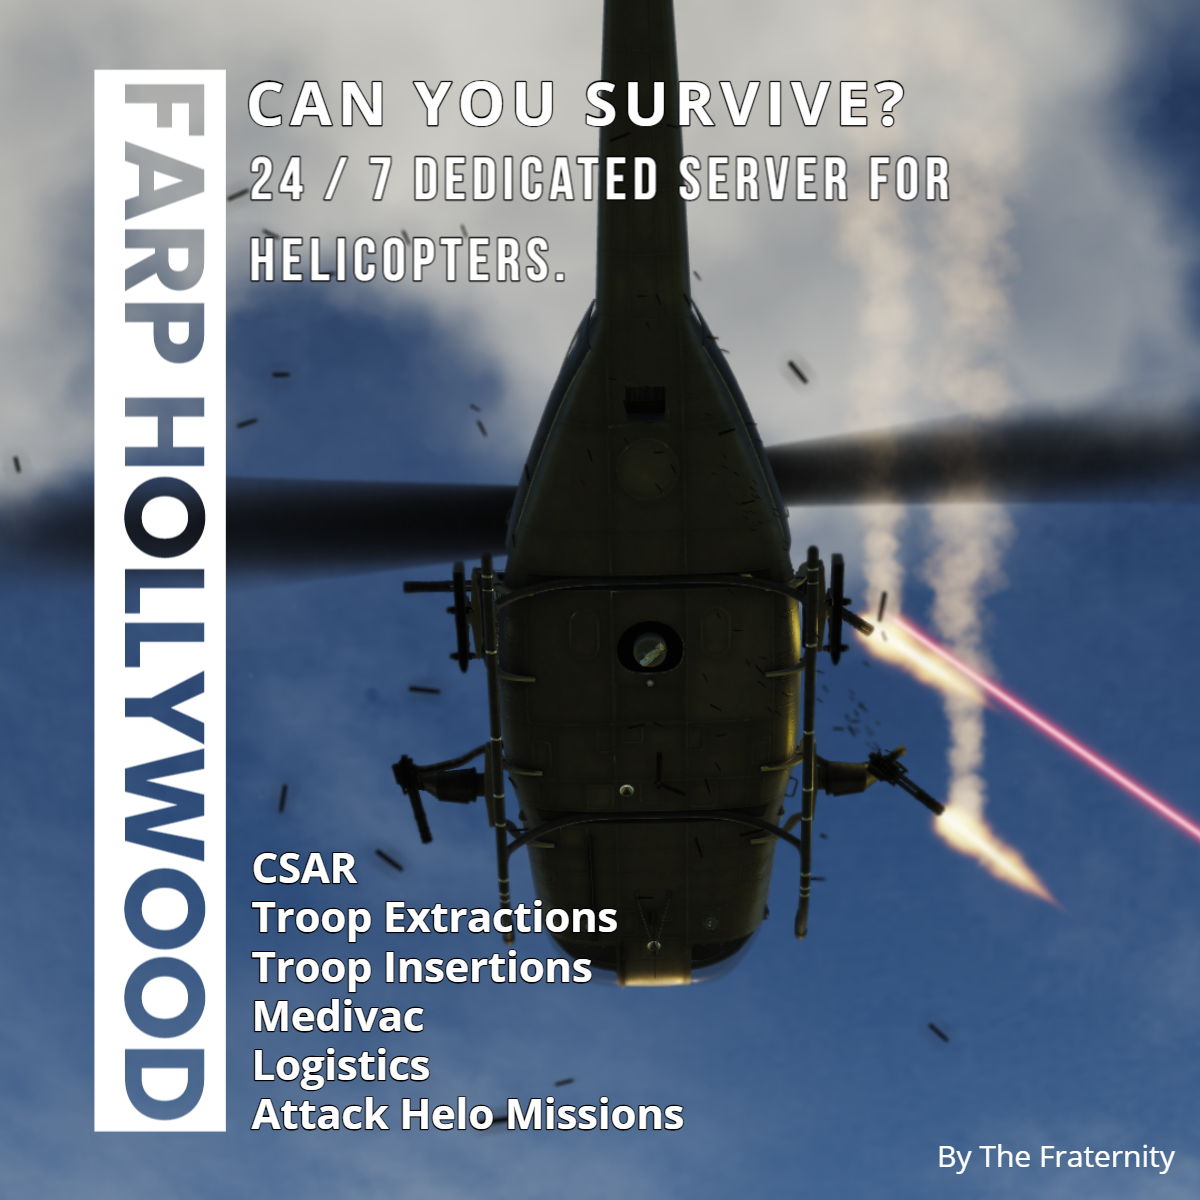 FARP Hollywood - Caucasus [Helicopter Sandbox] - All Helo Modules (Single or Multiplayer) by Element